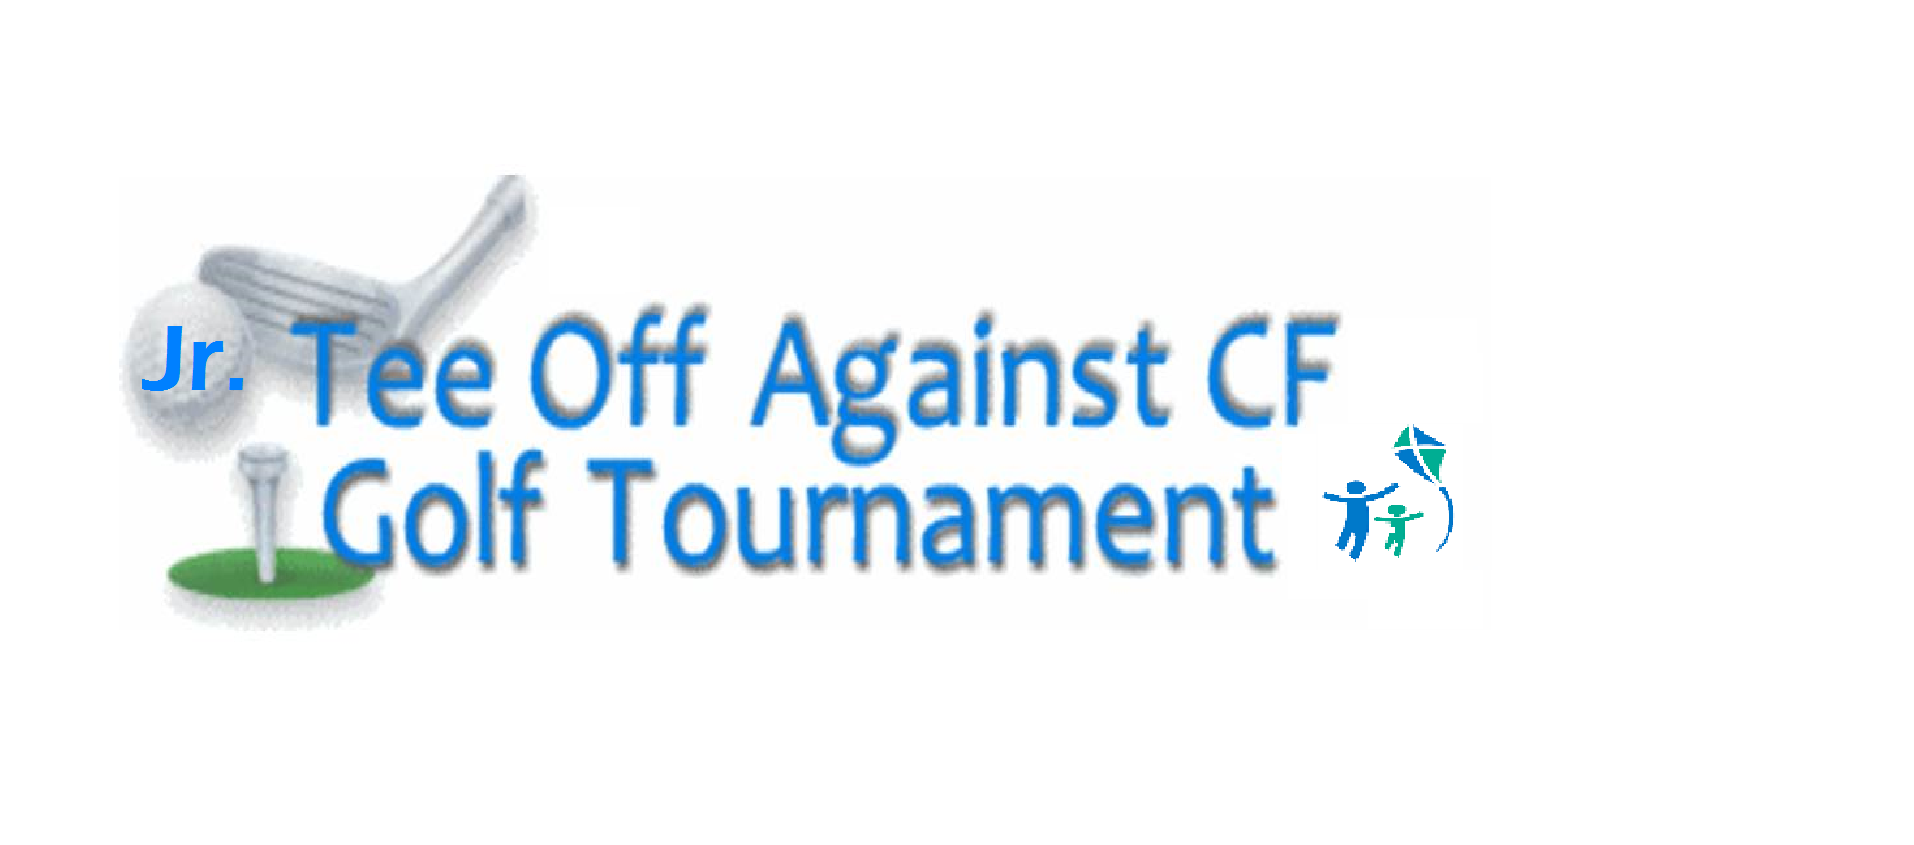 5th Annual Tee Off Against CF Golf Tournament logo